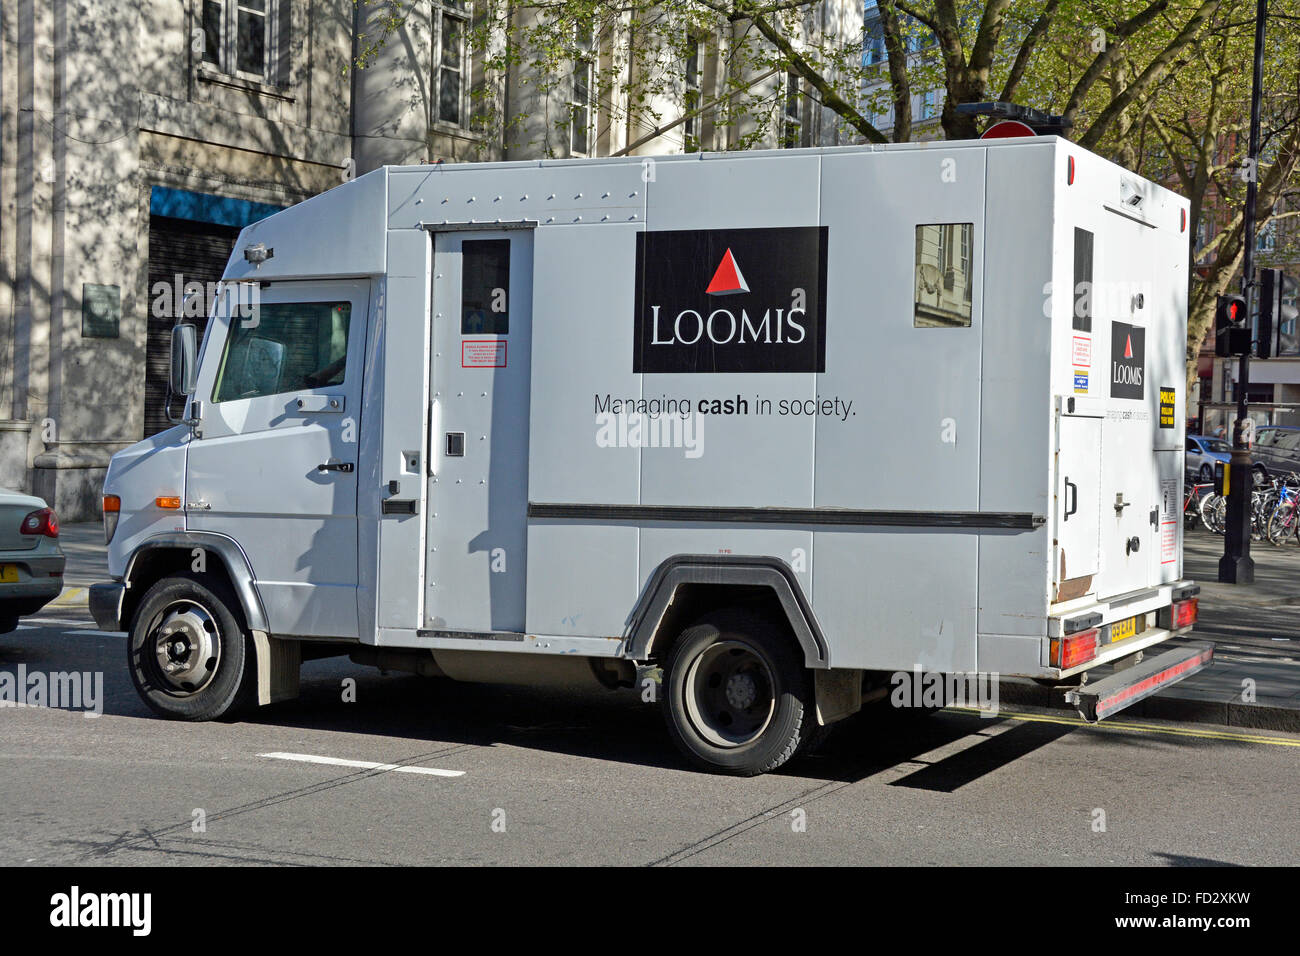 6f382ab5e3a83c Security Van Stock Photos   Security Van Stock Images - Alamy